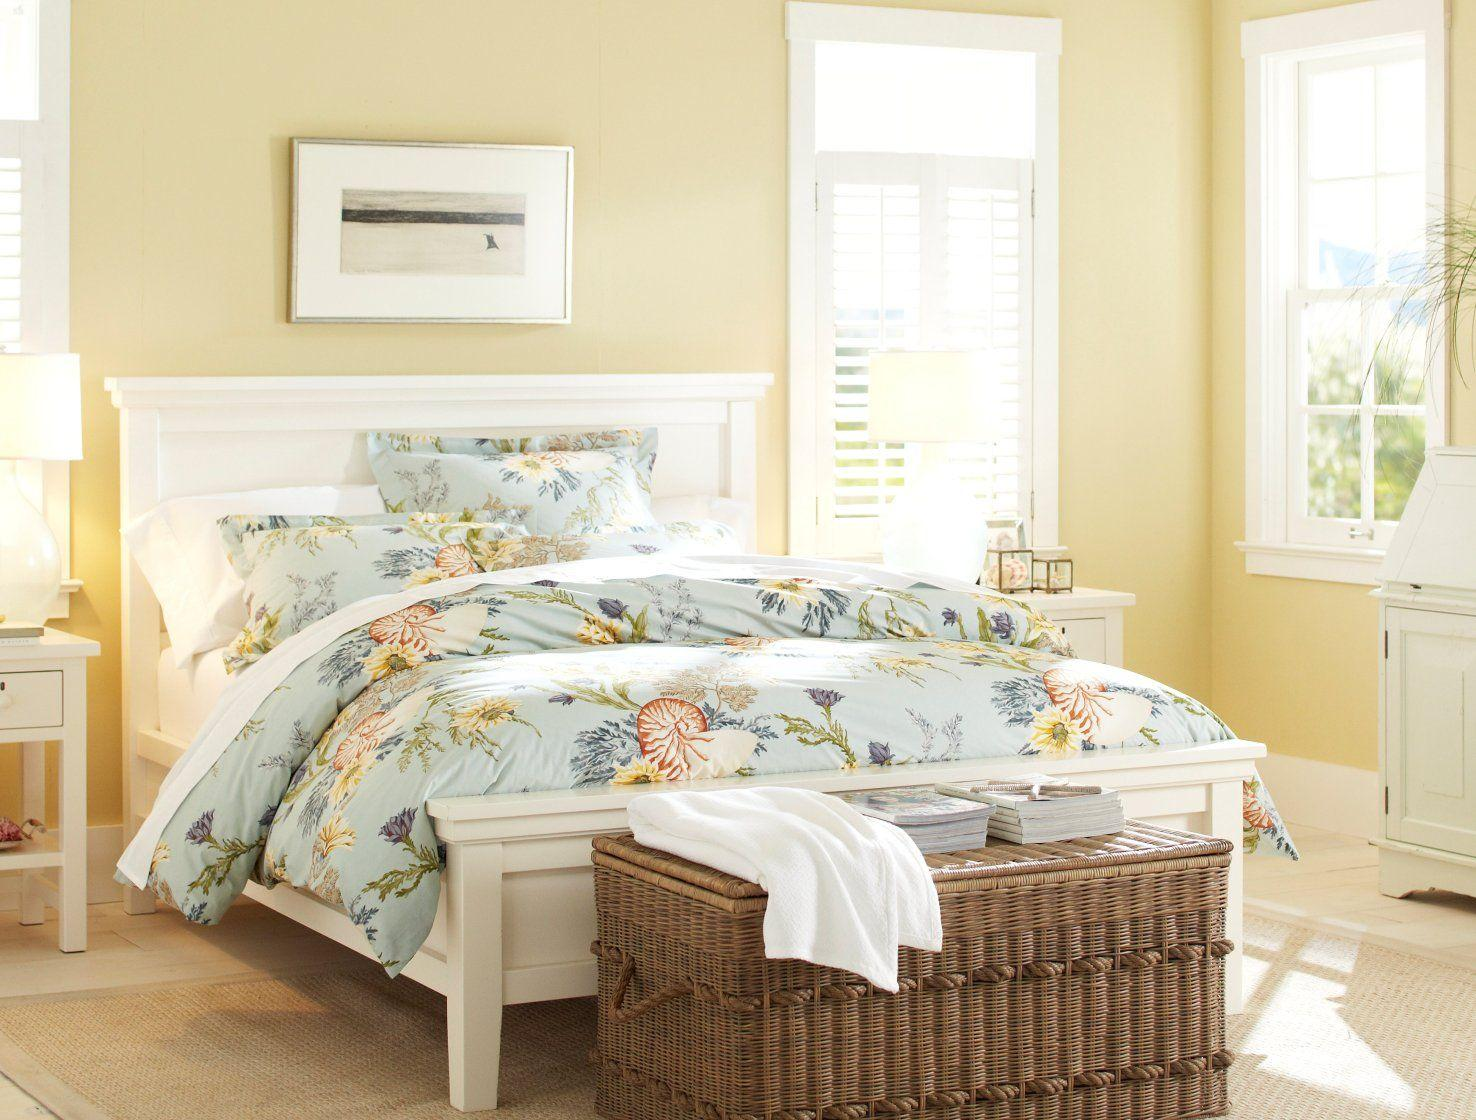 Image result for What Can I Do To Prevent Yellowing On My Sheets? pinterest